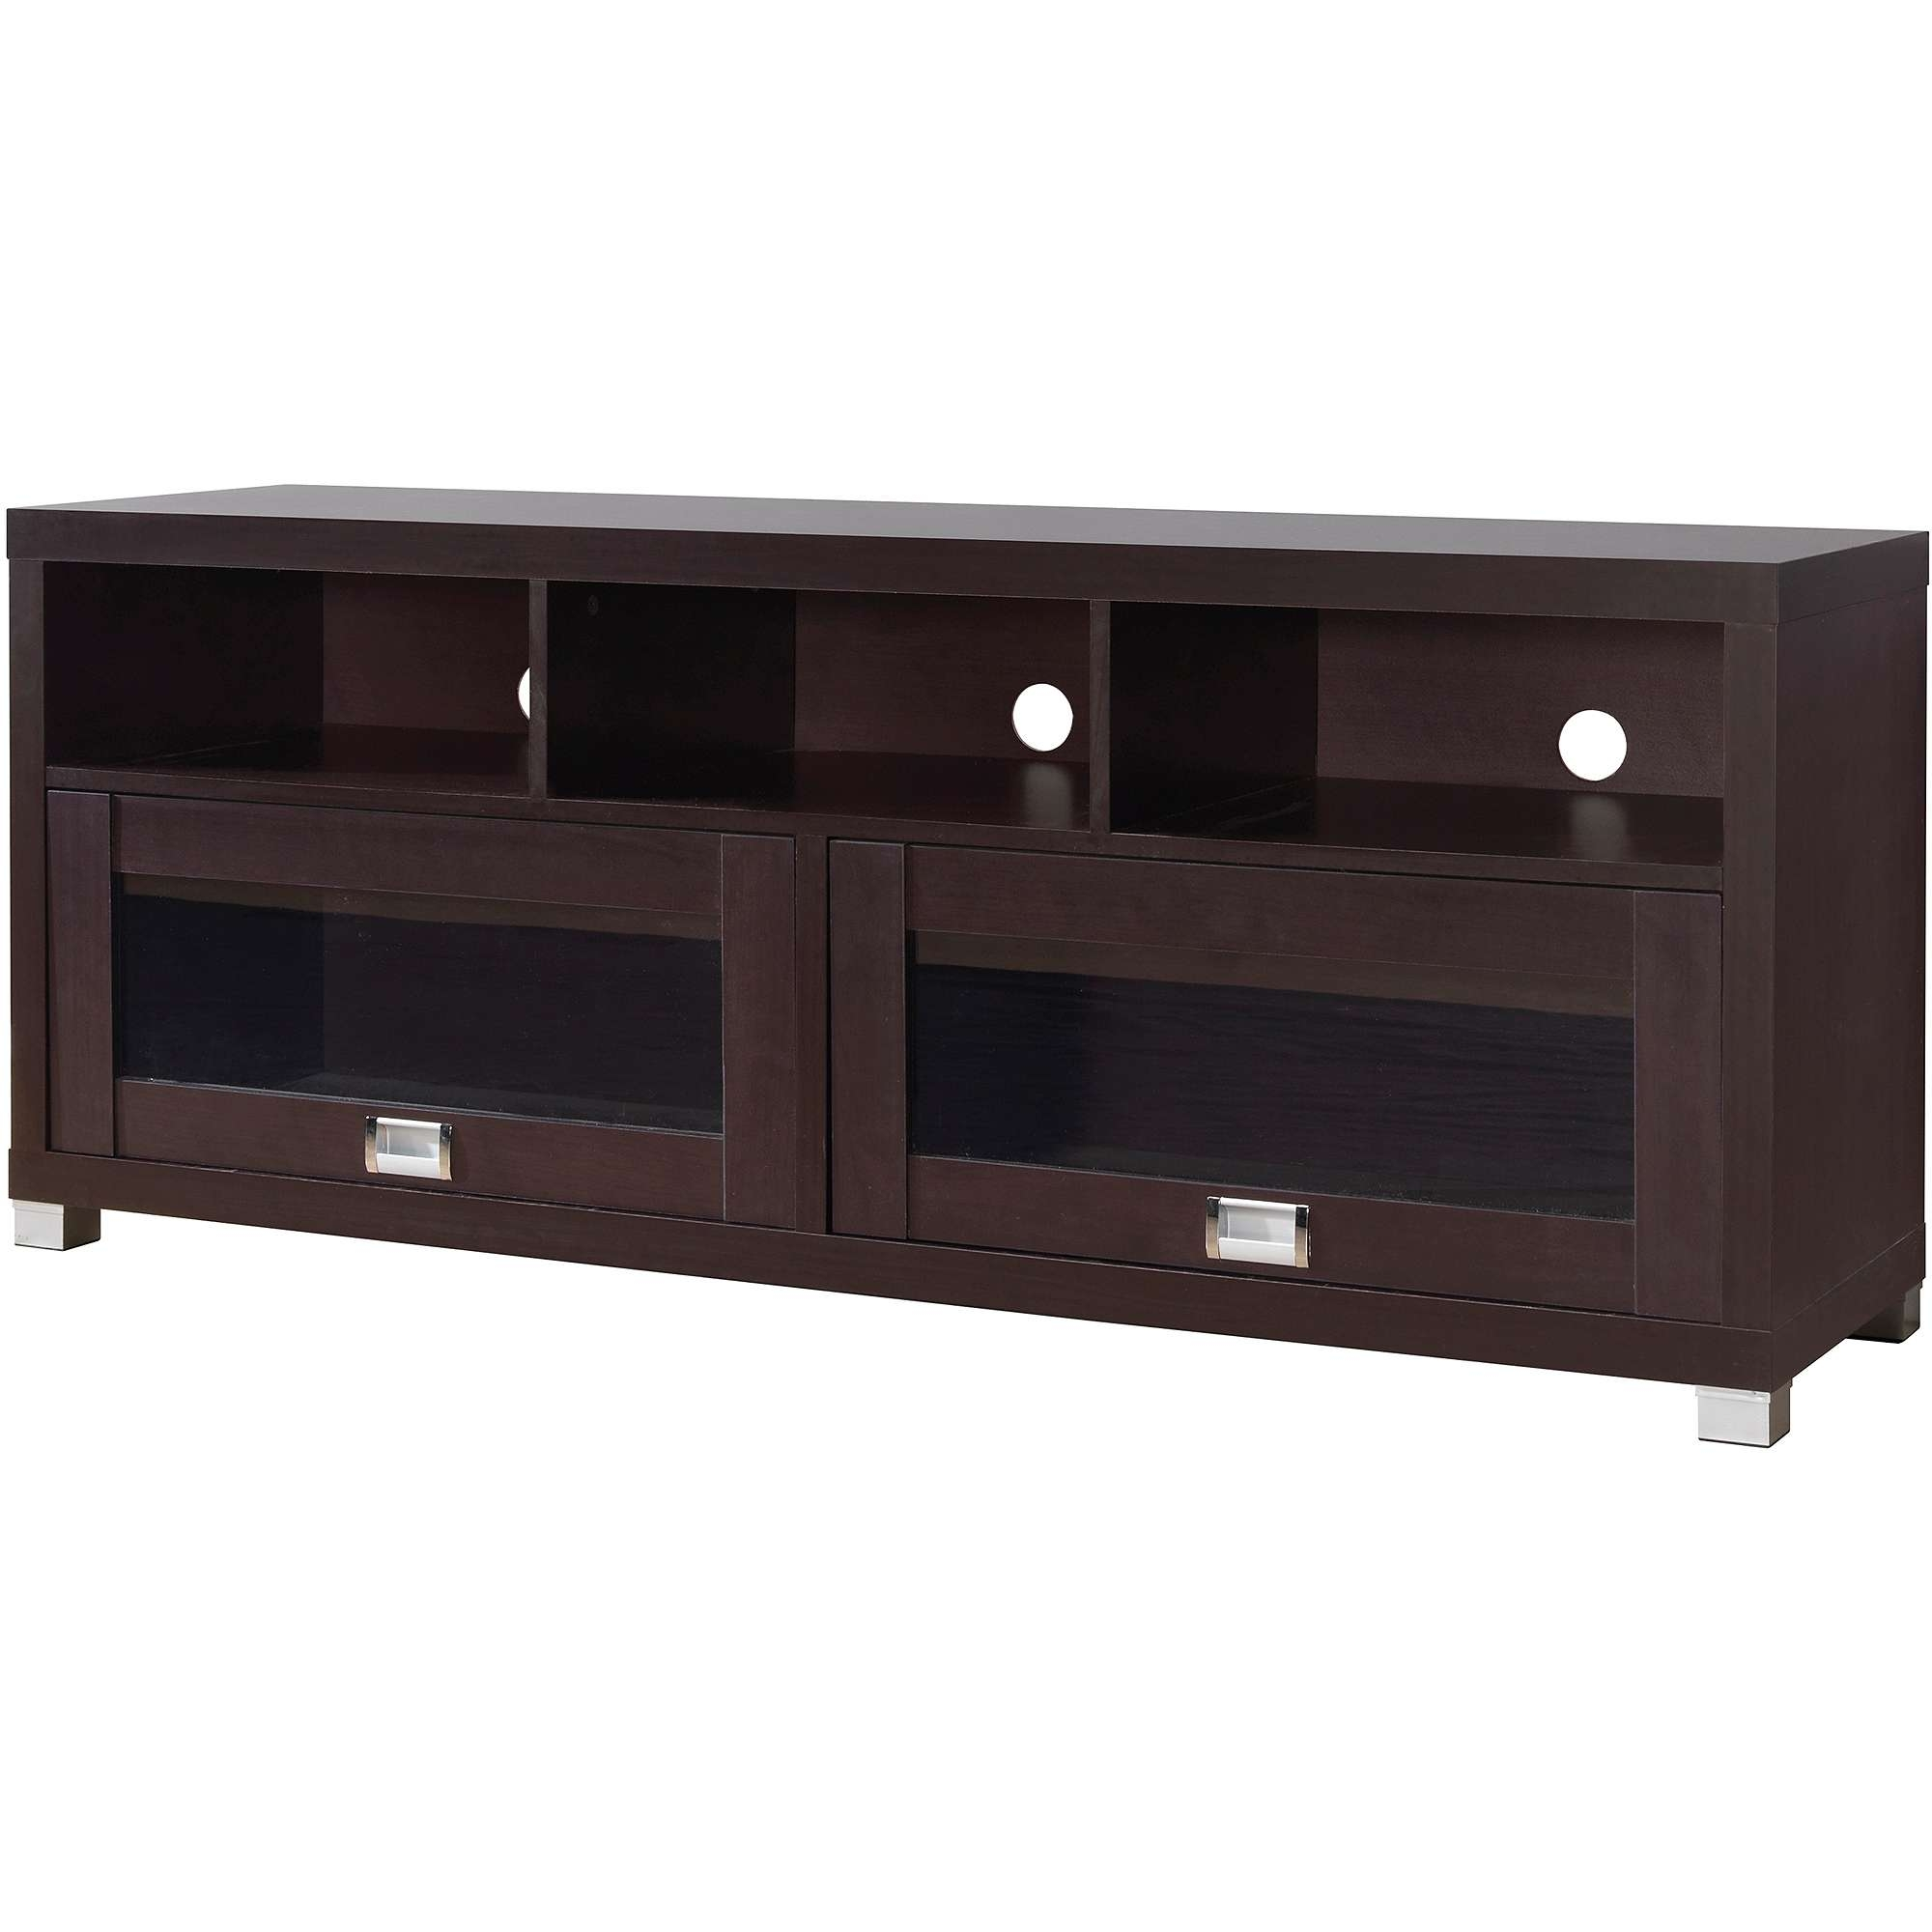 Espresso Tv Stands Pertaining To Expresso Tv Stands (View 2 of 15)